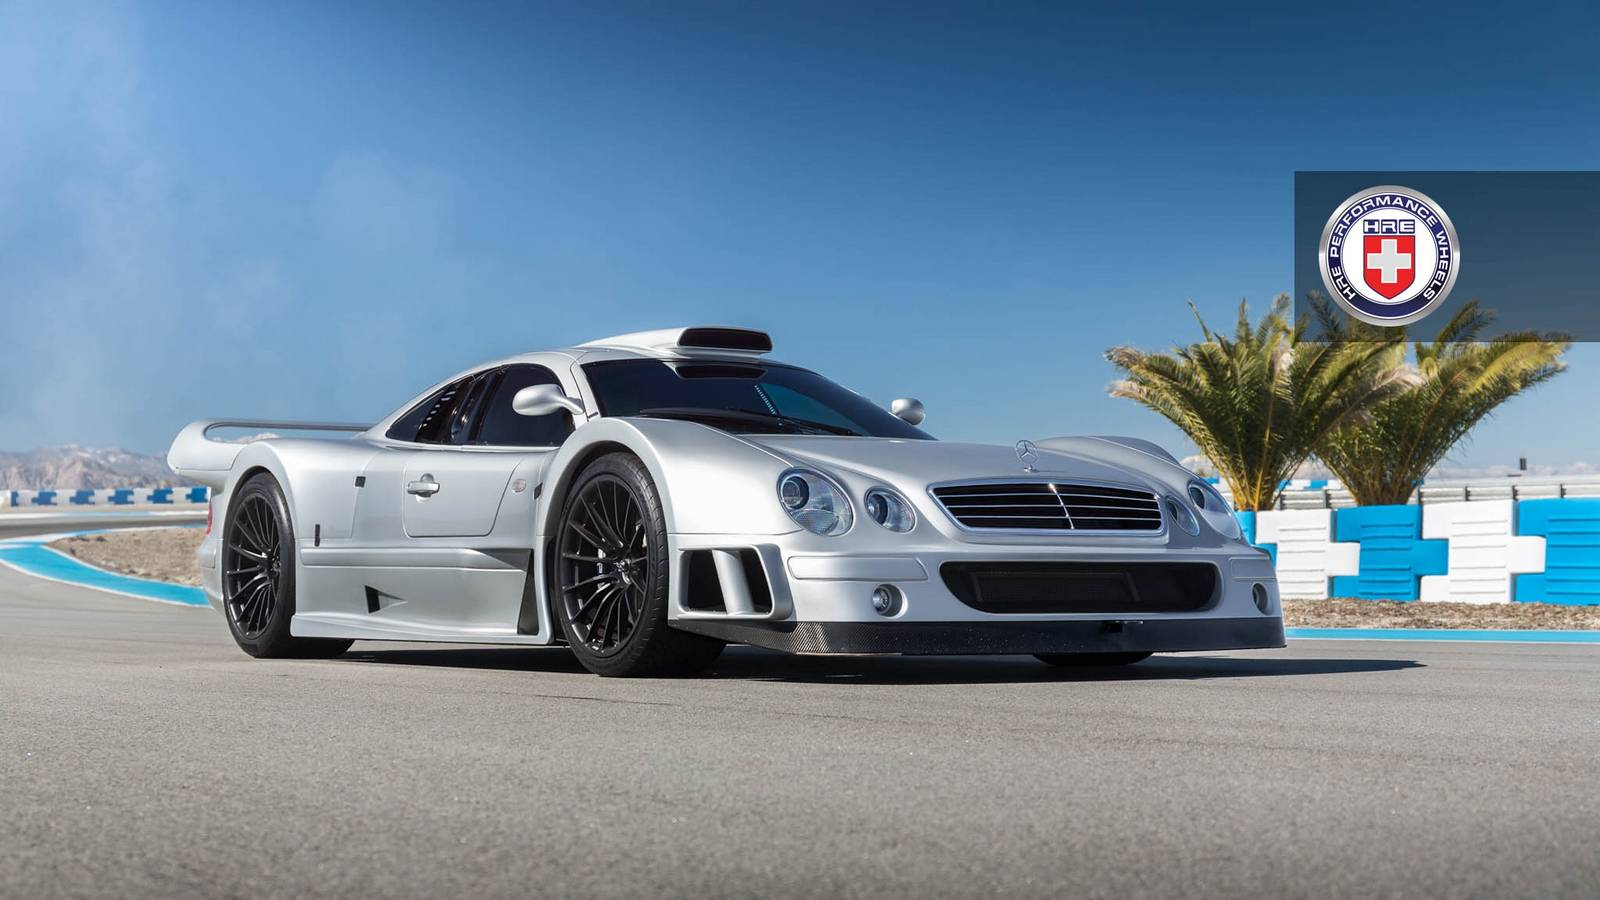 stunning mercedes benz clk gtr with satin black hre wheels gtspirit. Black Bedroom Furniture Sets. Home Design Ideas